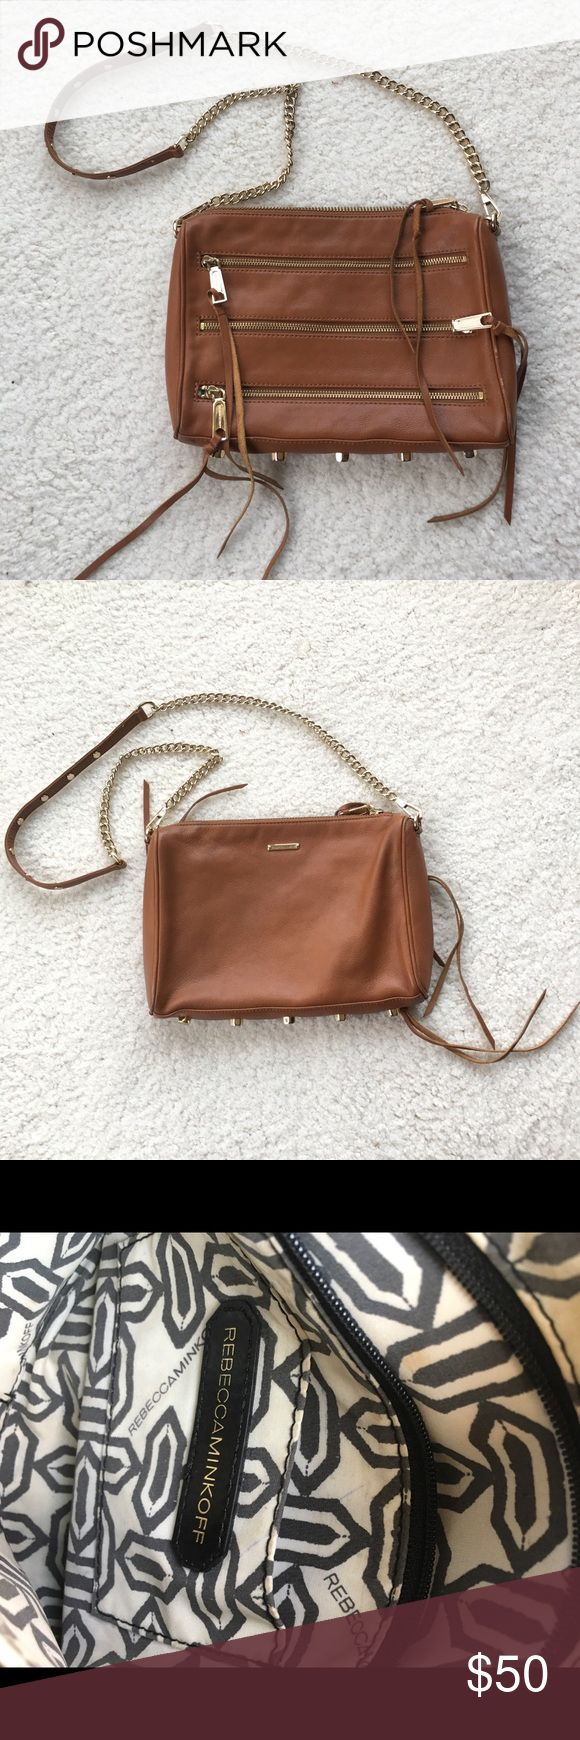 Rebecca minkoff 5 zip purse Small scratches on rim of bag and a few makeup spots on the inside Rebecca Minkoff Bags Crossbody Bags